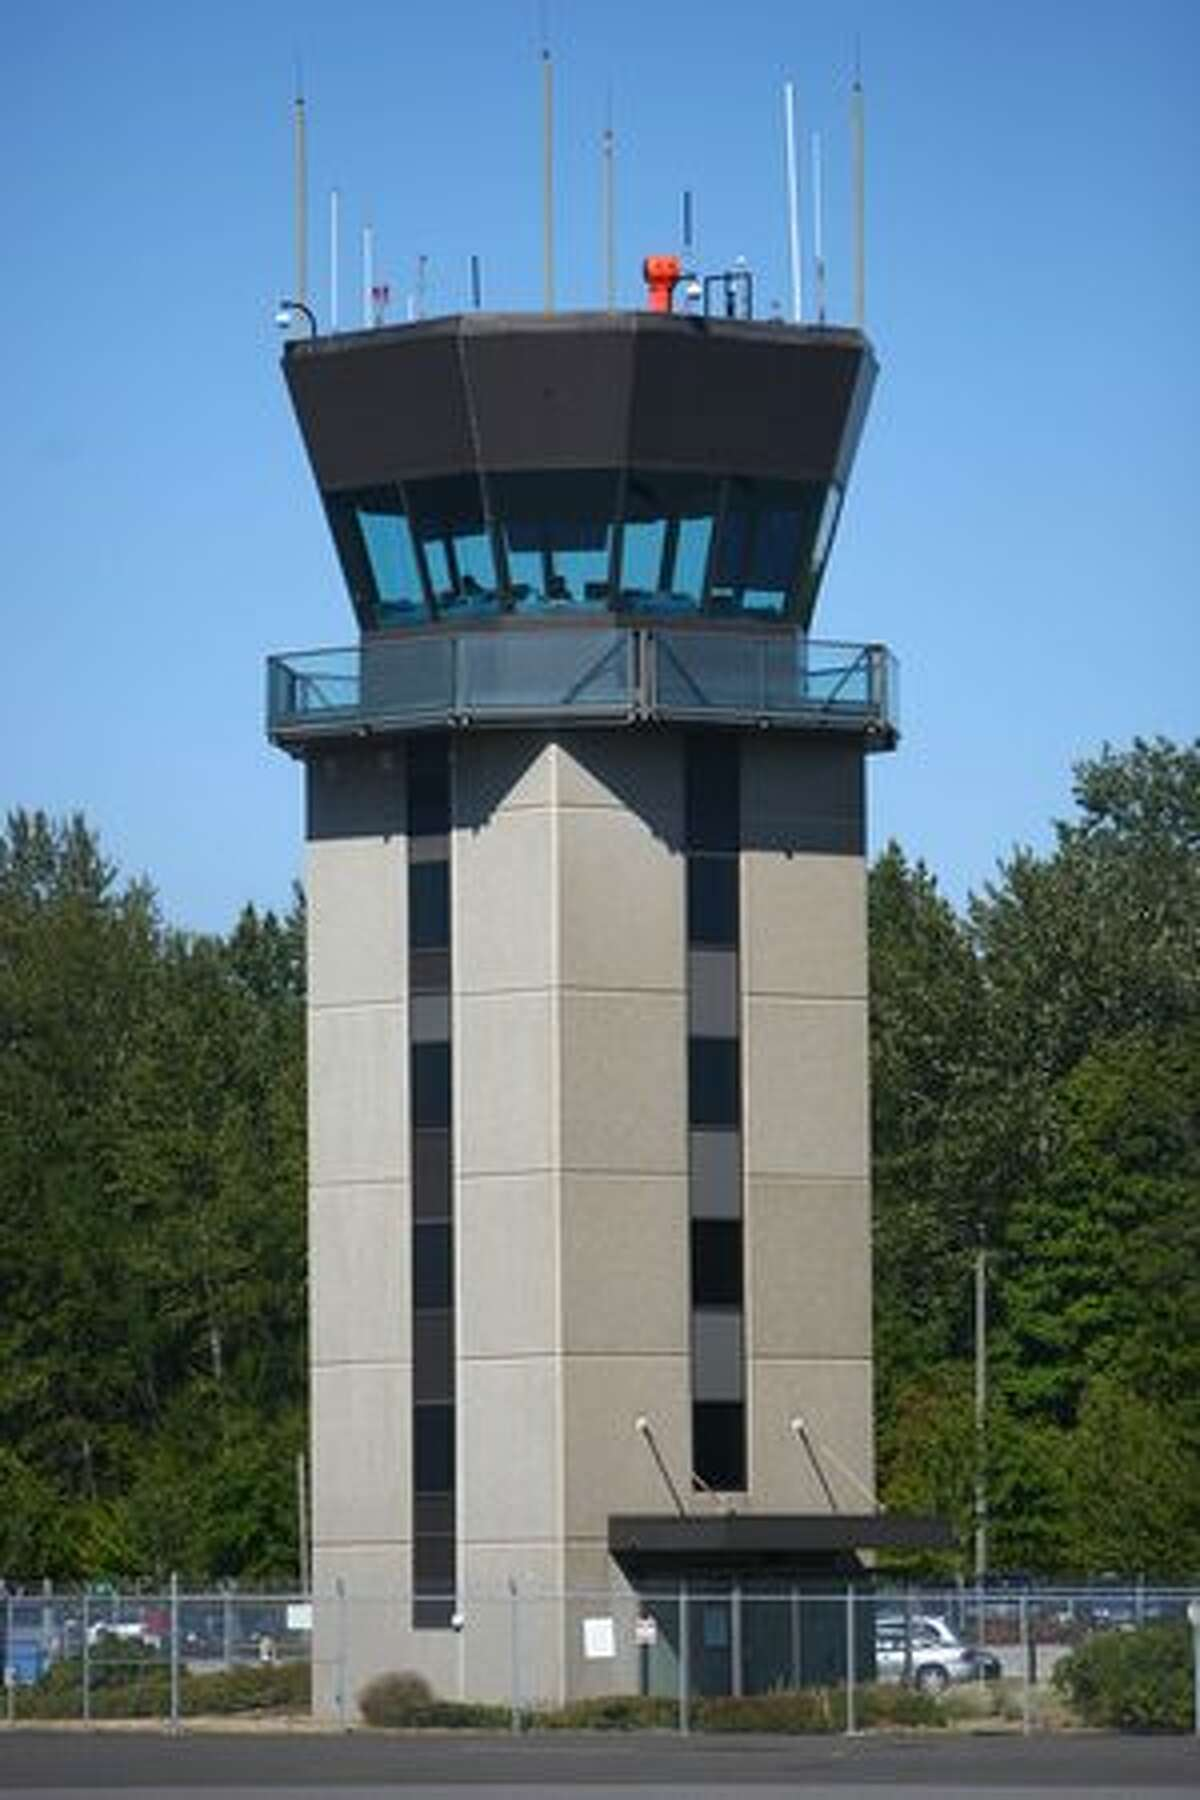 The air traffic control tower at Bellingham International Airport.